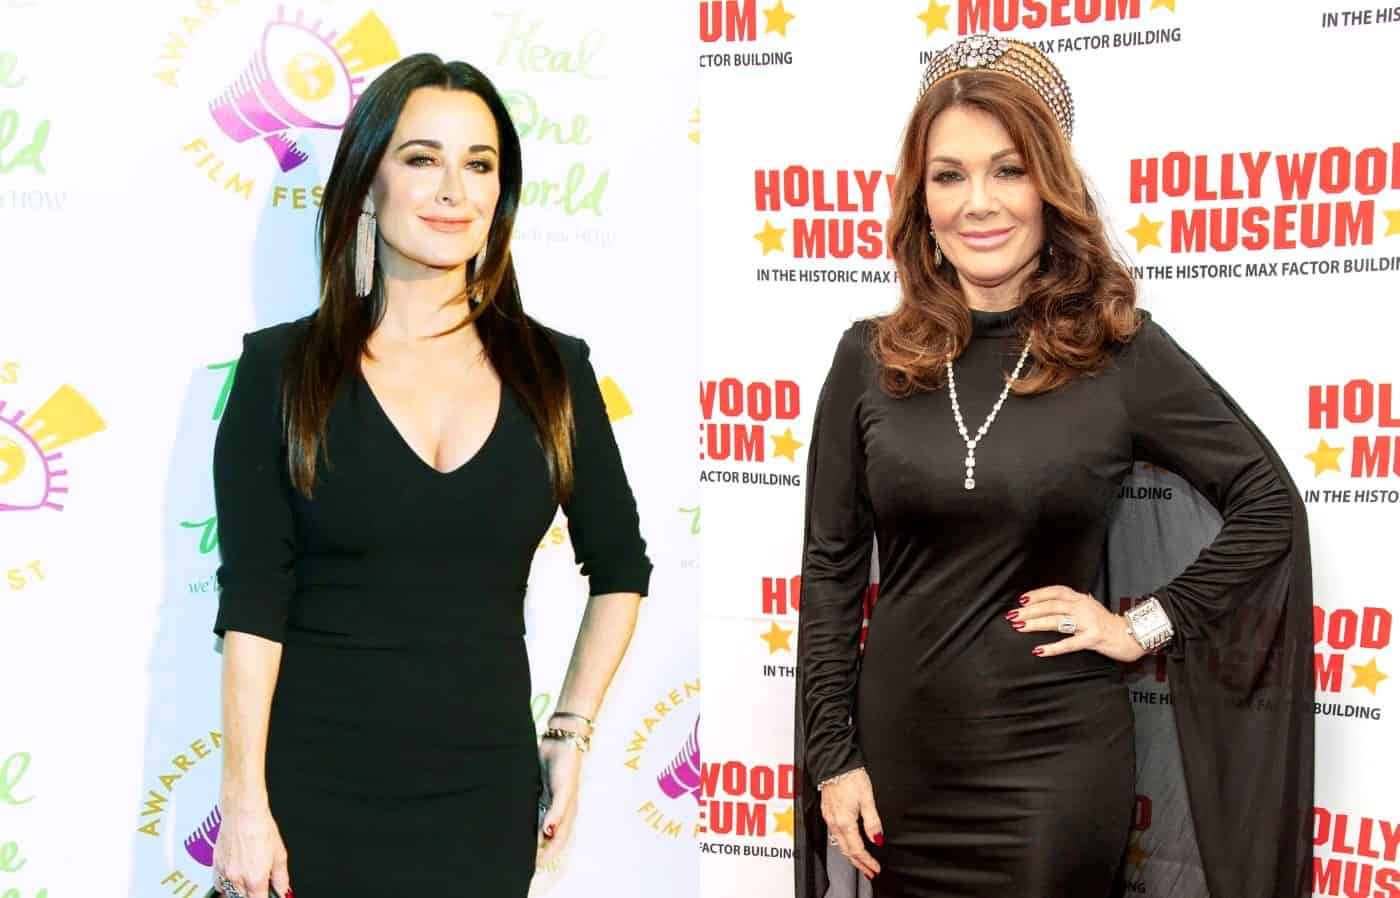 RHOBH's Kyle Richards Fires Back at Lisa Vanderpump's Diss by Mentioning Her Wine Line After Lisa Stated Kyle Gave Her Worst Gift